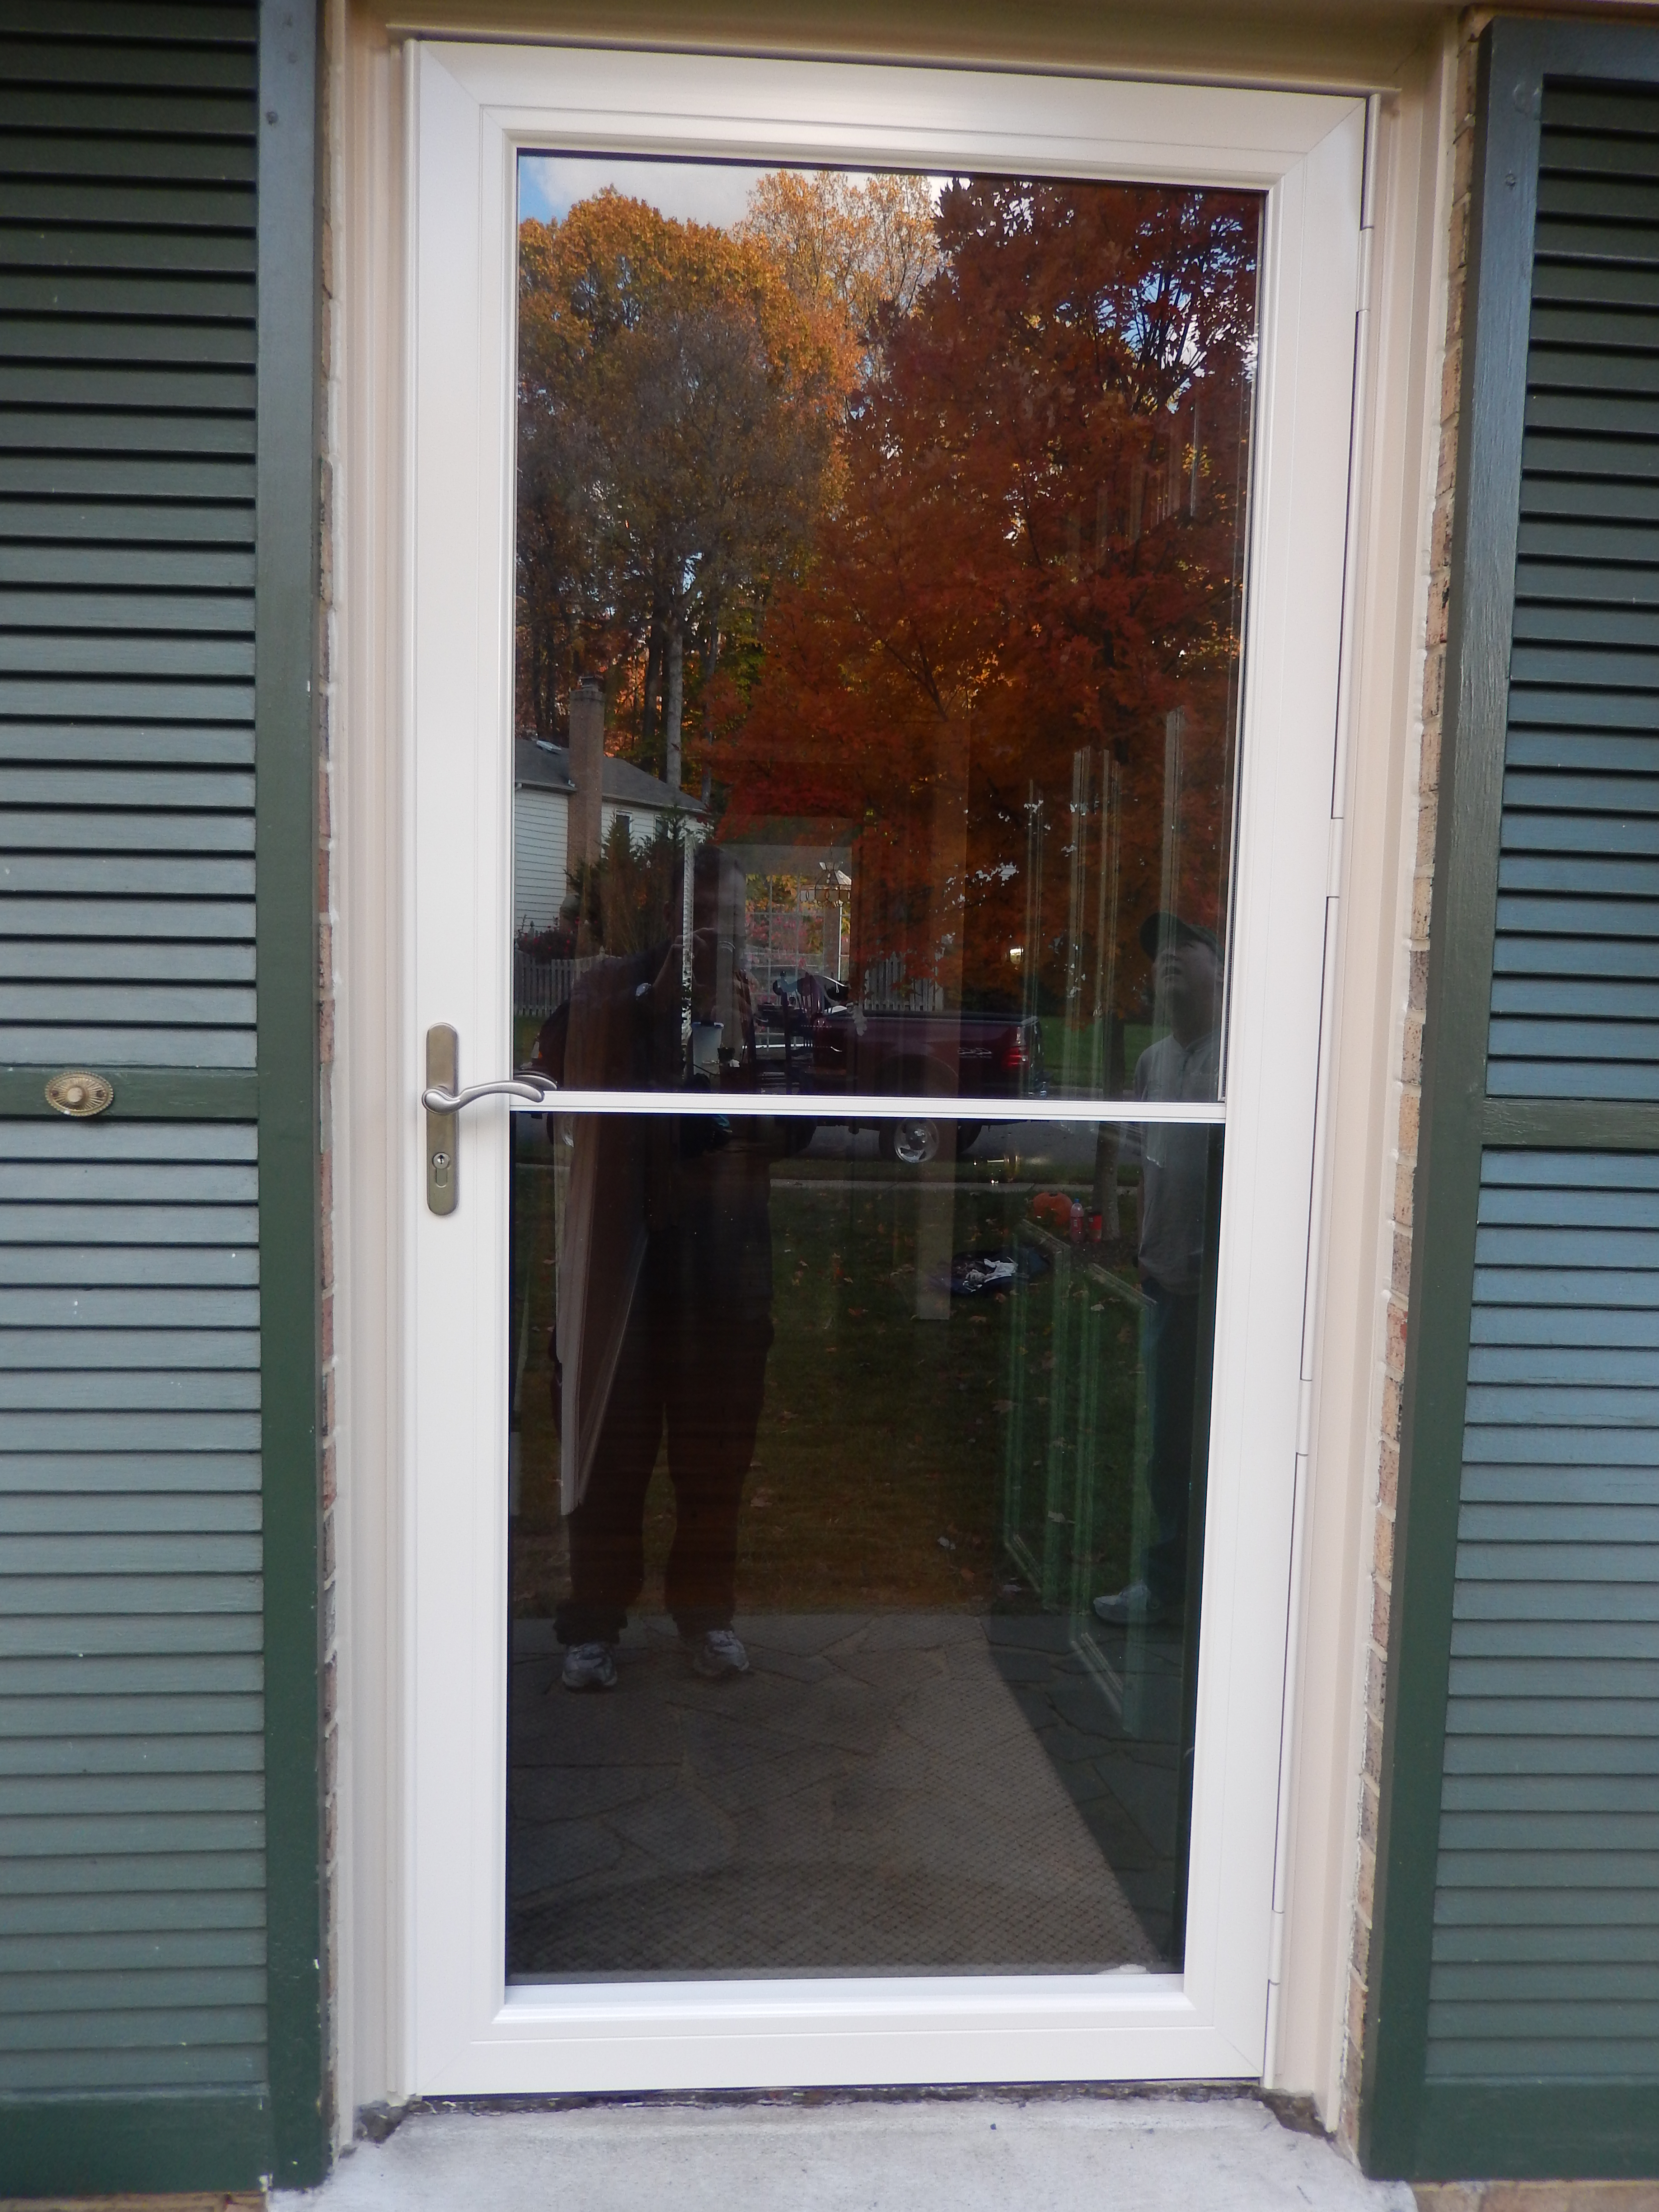 What Are The Features Of An Anderson 4000 Storm Door